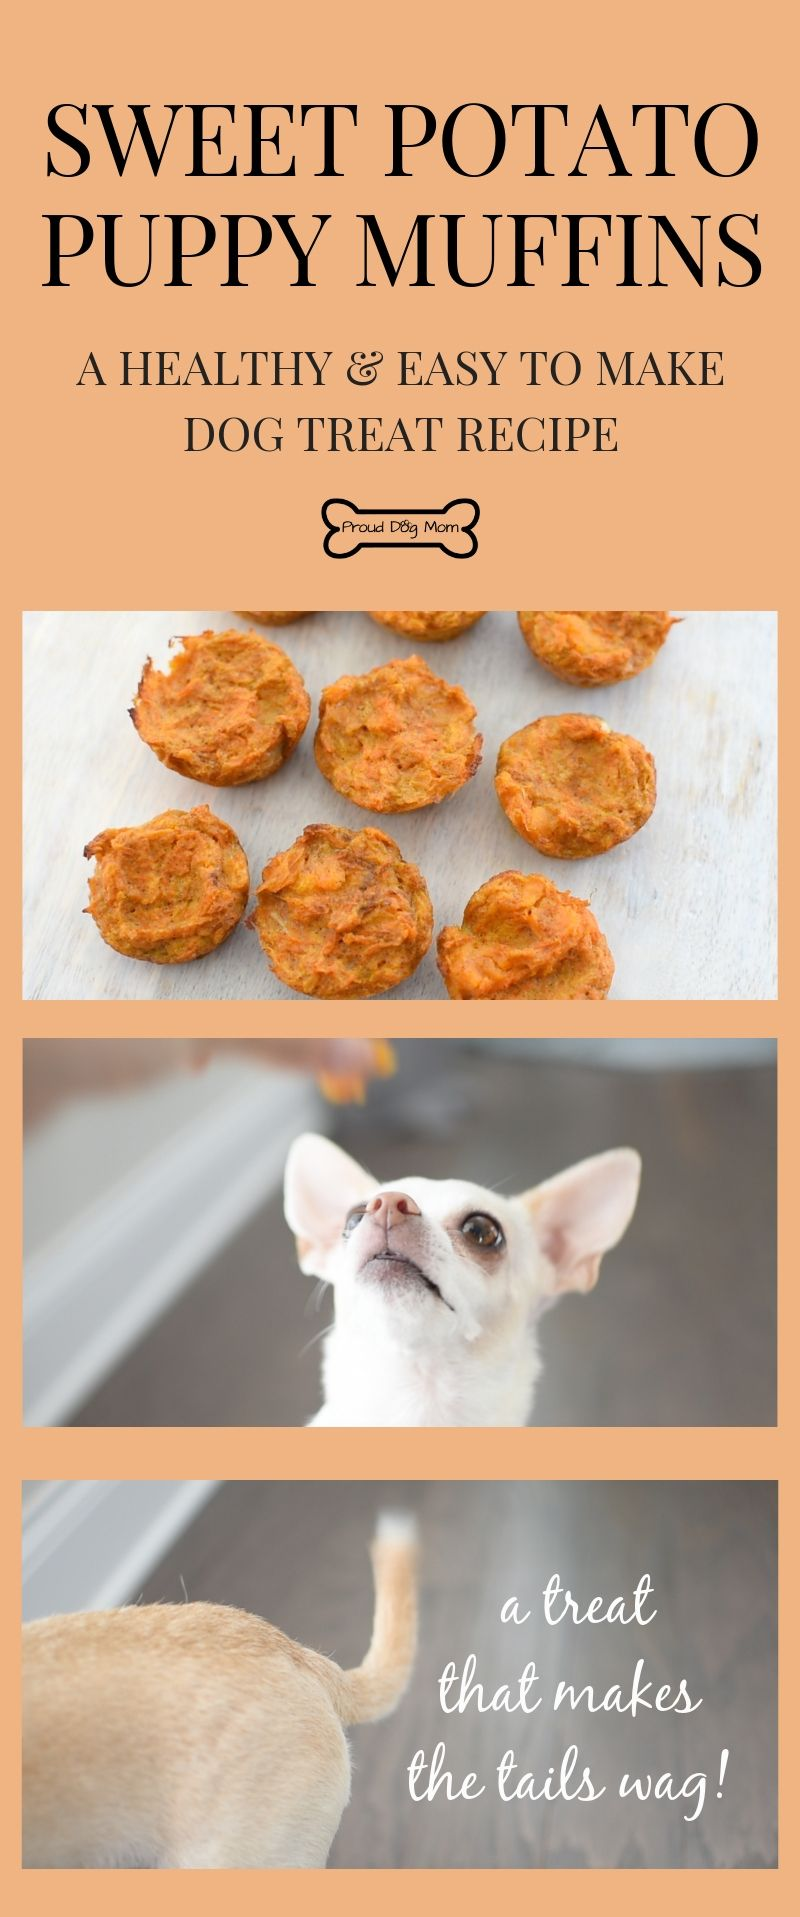 Sweet Potato Puppy Muffins Recipe Proud Dog Mom Dog Treats